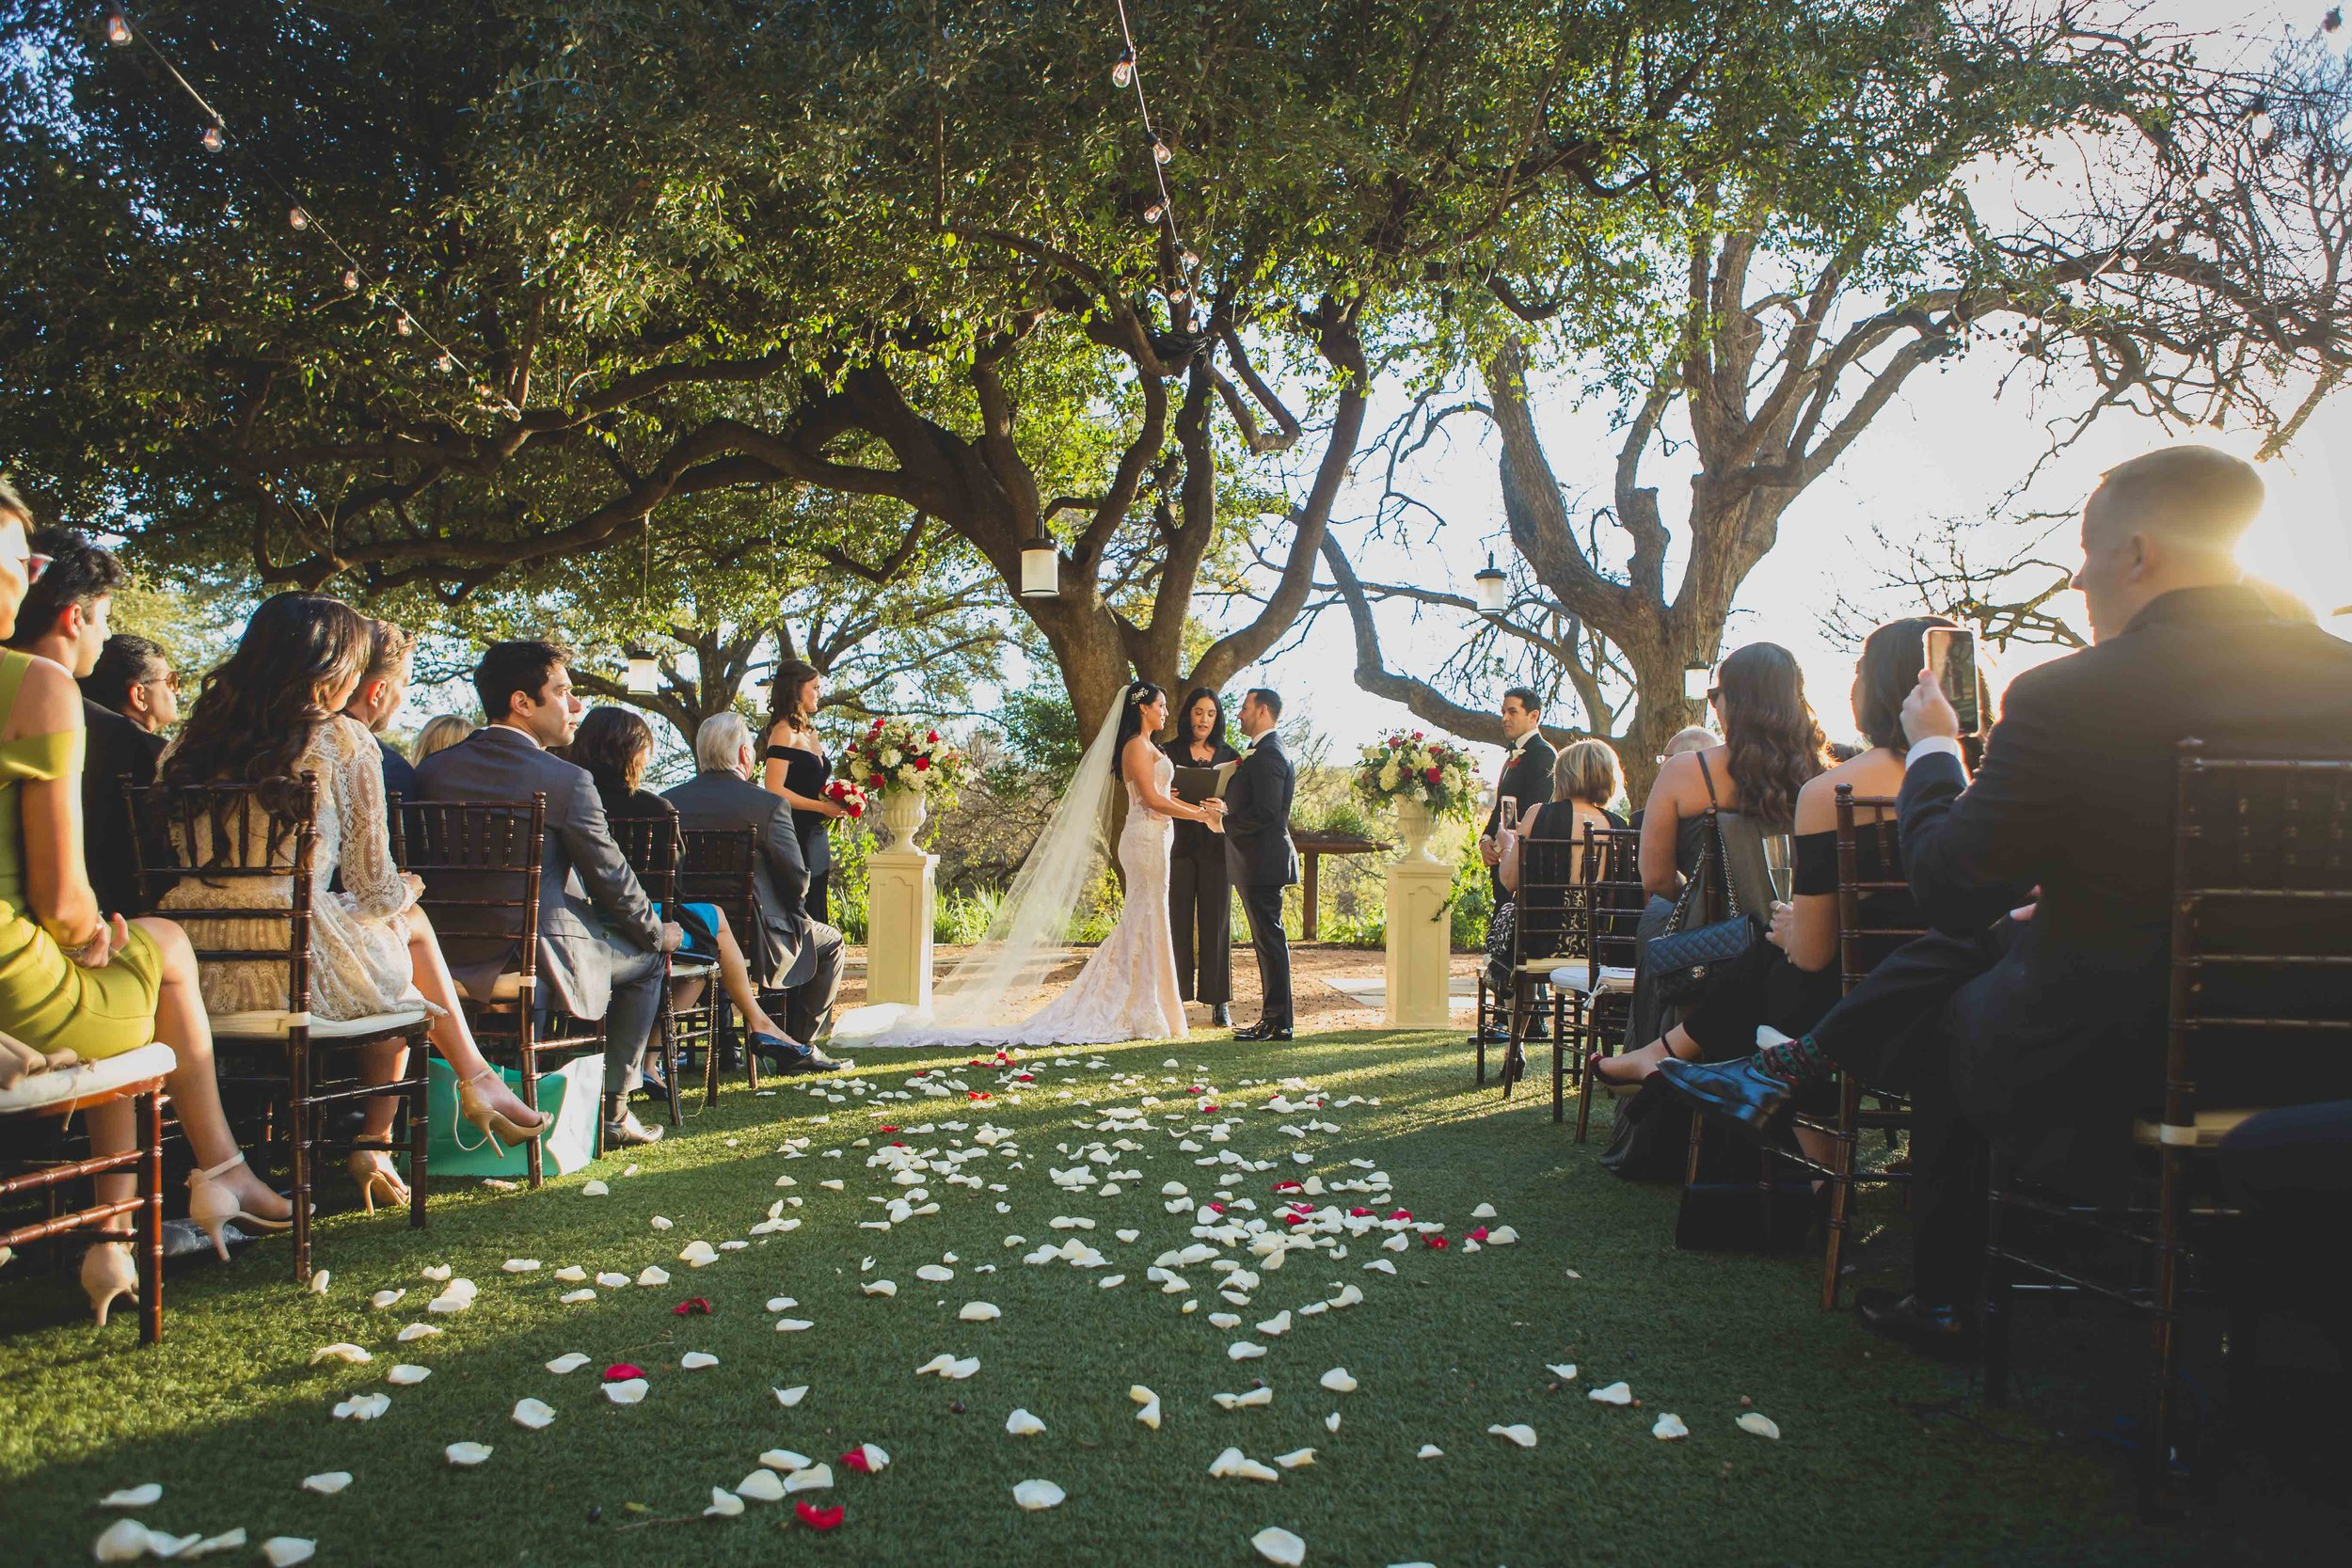 A wedding ceremony under a large tree.